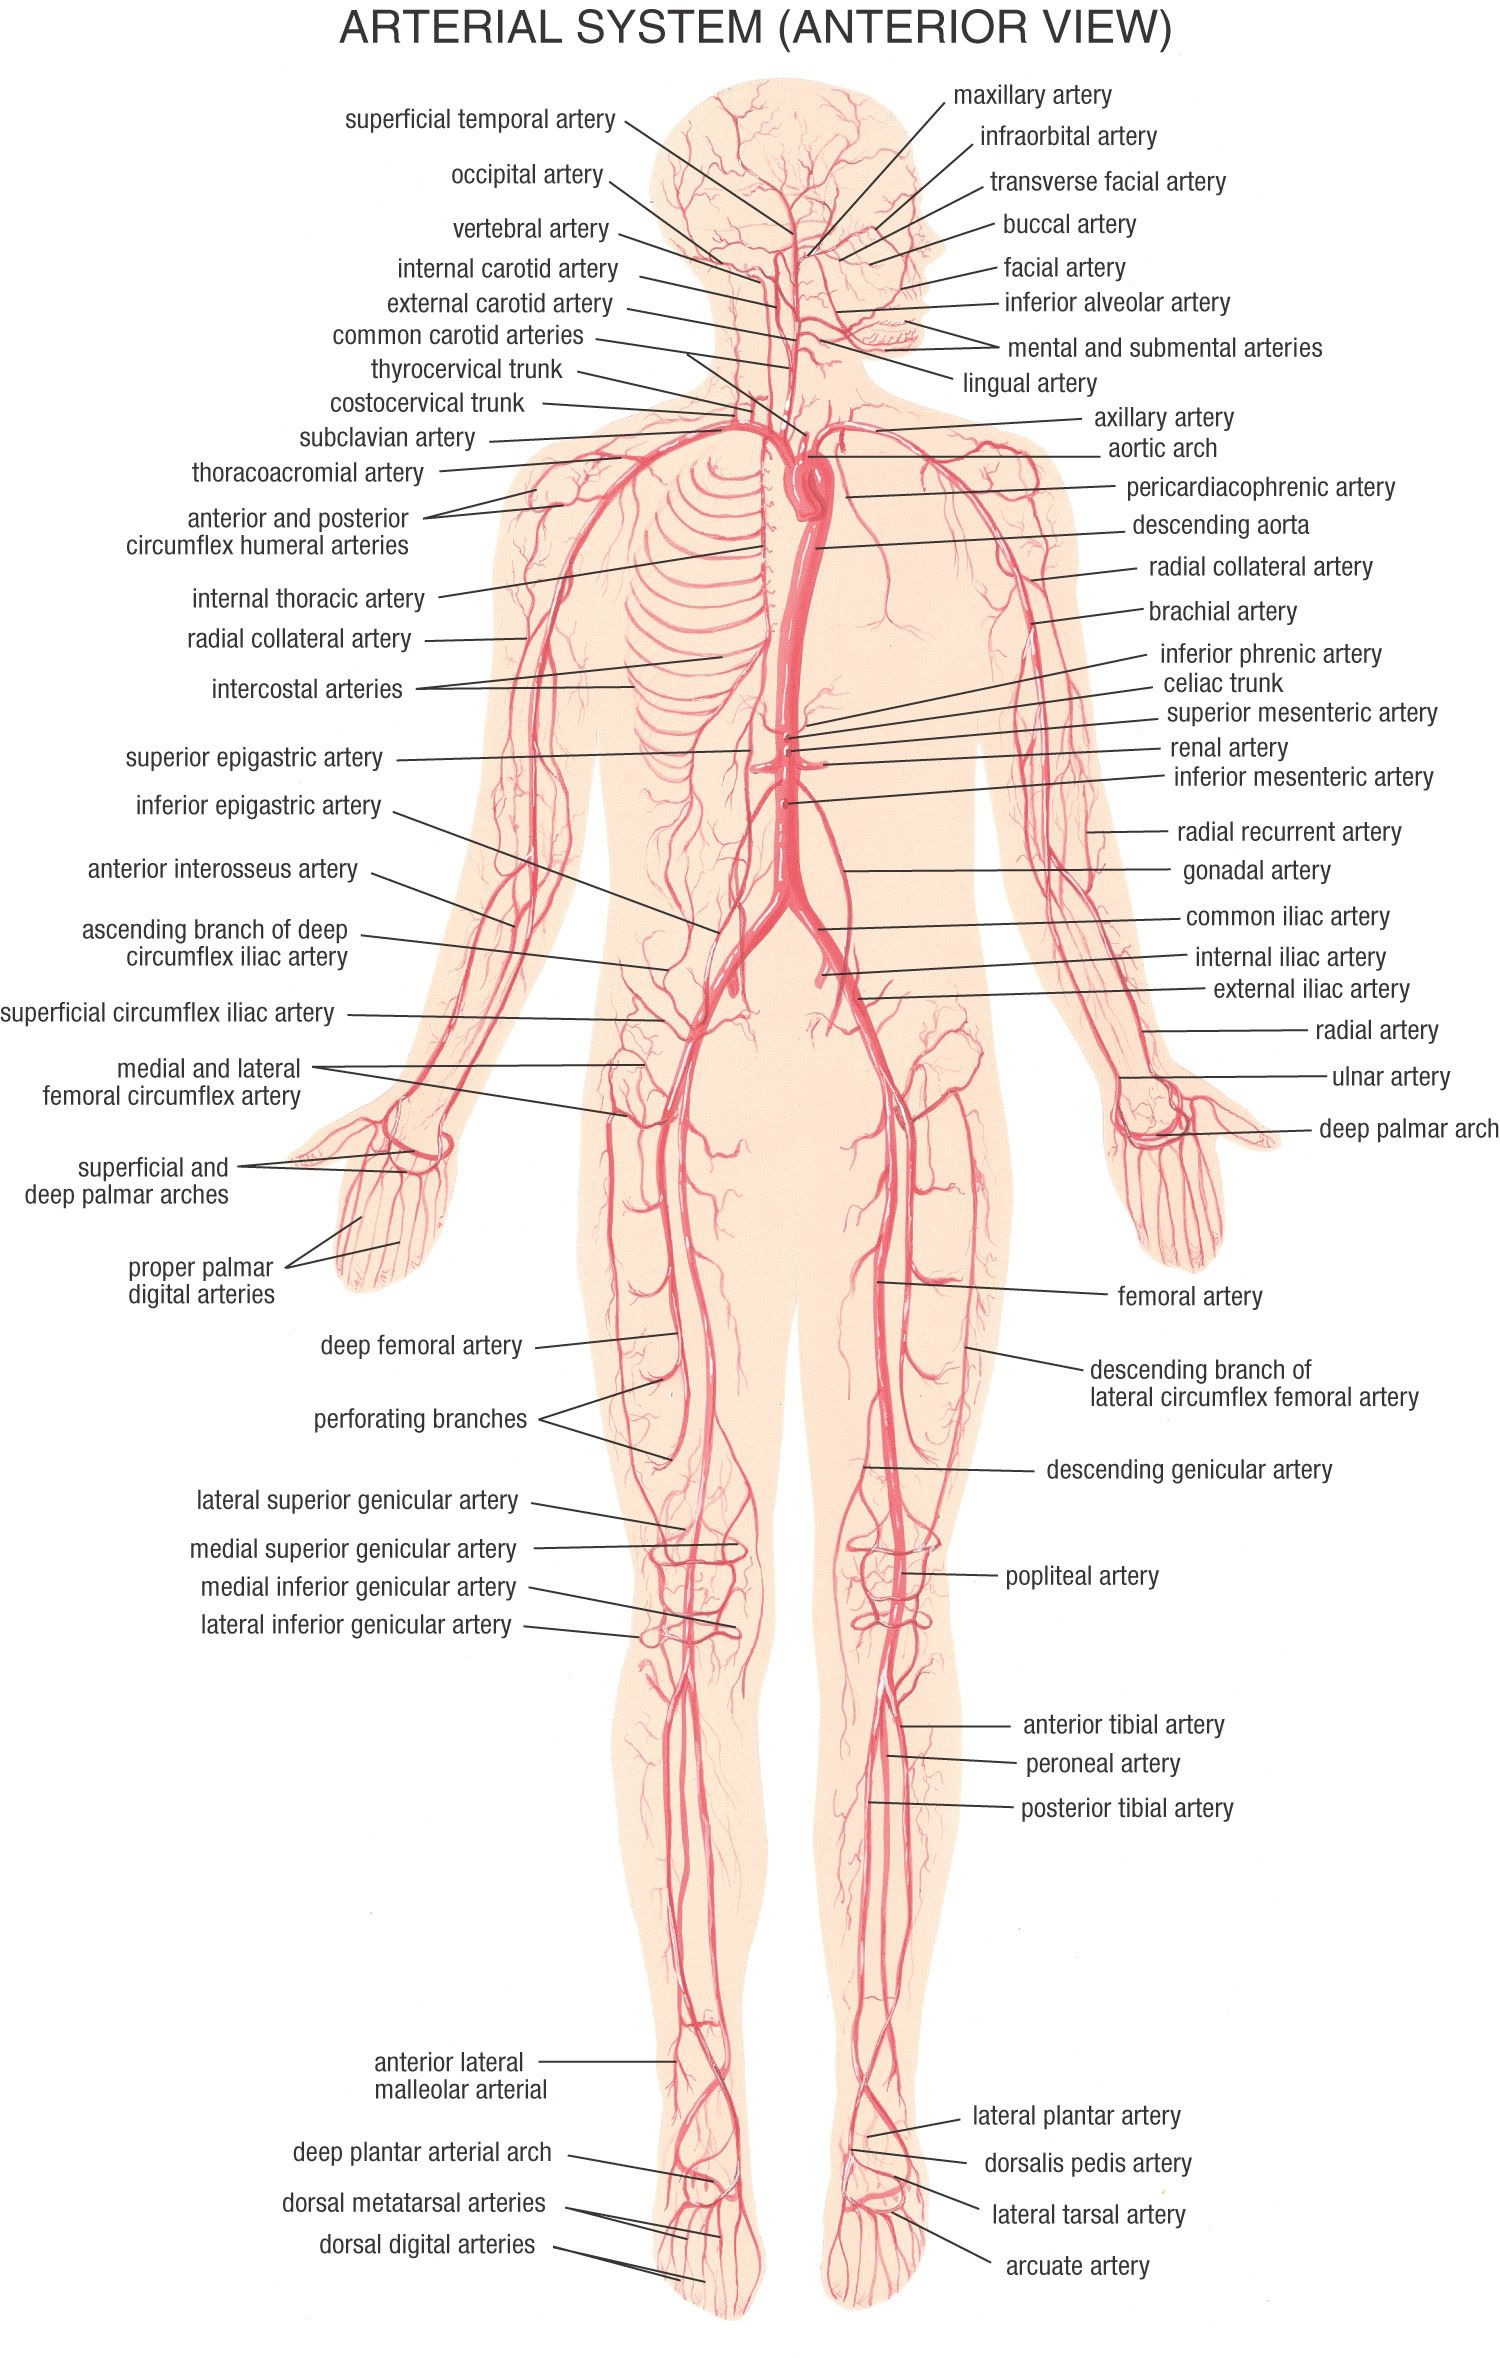 www.kenfuderyu.co.za images gym Body%20Systems Arterial_System.jpg ...